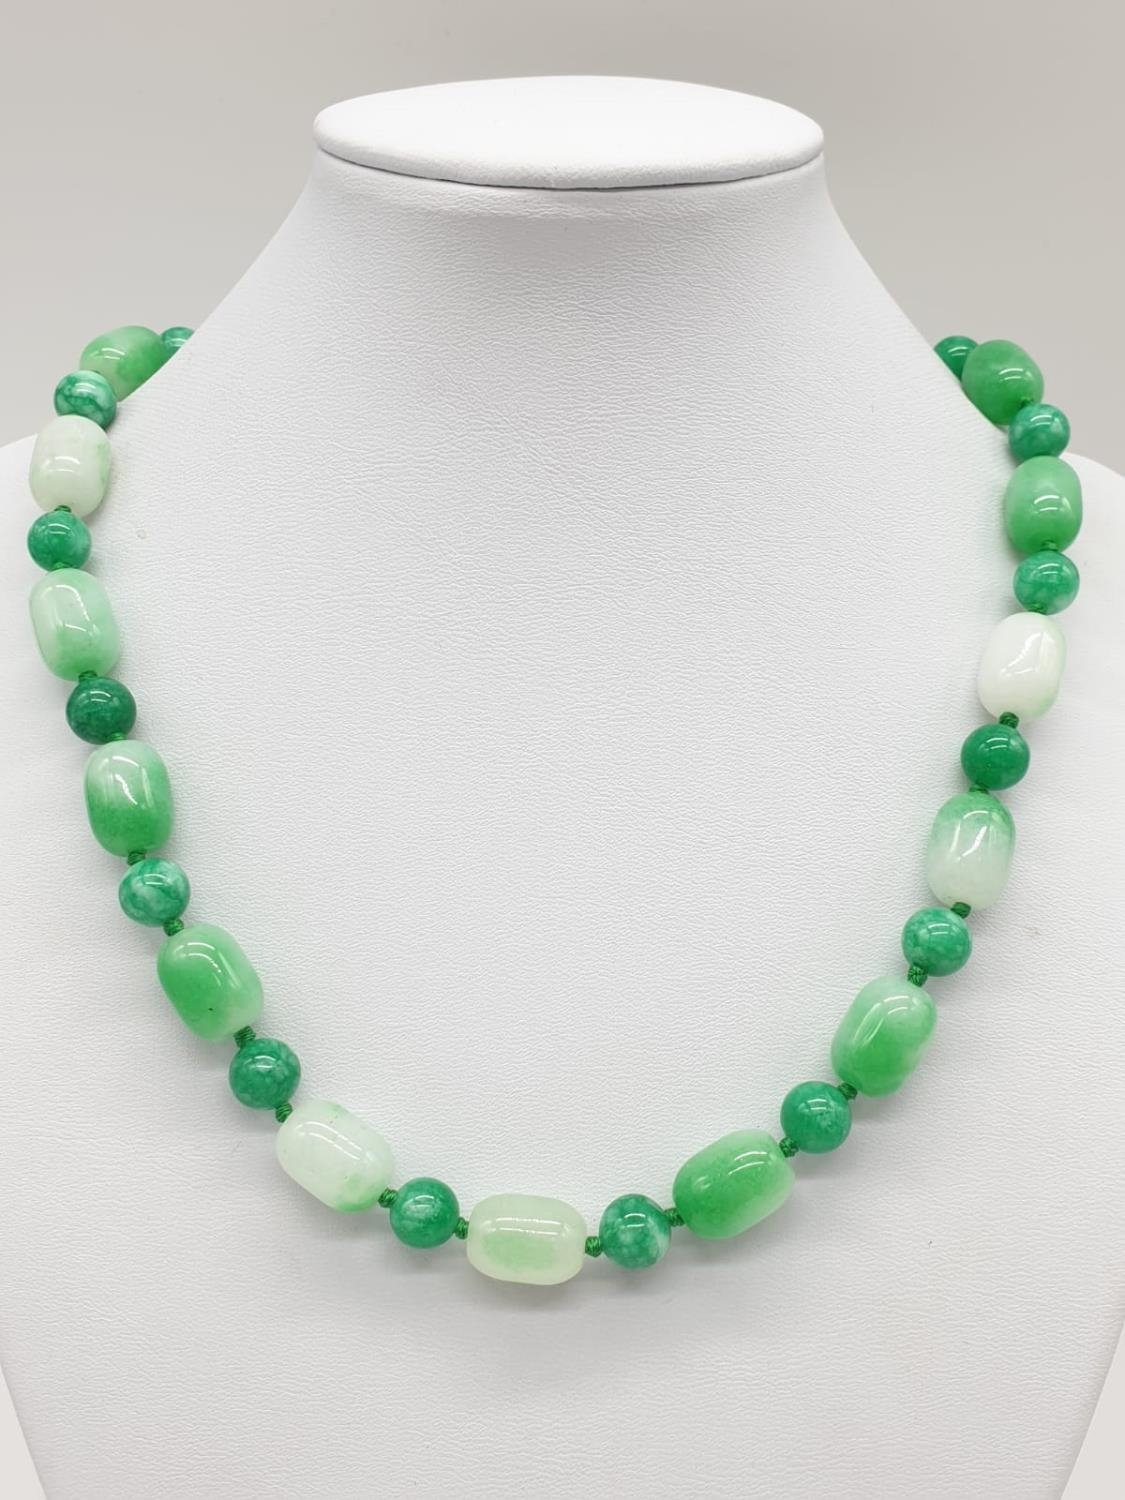 Jade necklace, weight 54g and 42cm long approx